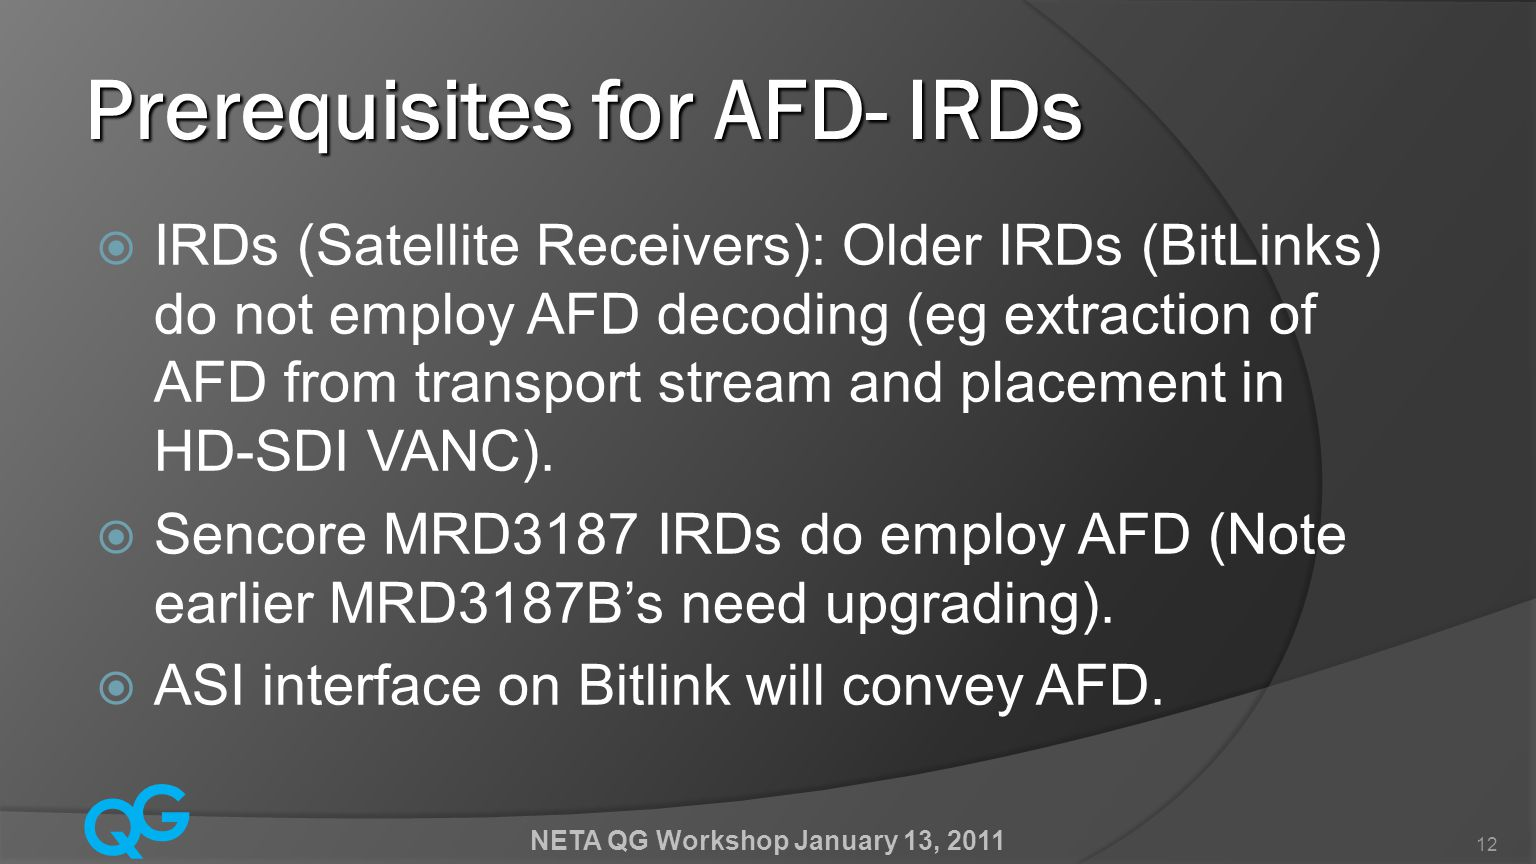 Q G NETA QG Workshop January 13, 2011 12 Prerequisites for AFD- IRDs  IRDs (Satellite Receivers): Older IRDs (BitLinks) do not employ AFD decoding (eg extraction of AFD from transport stream and placement in HD-SDI VANC).